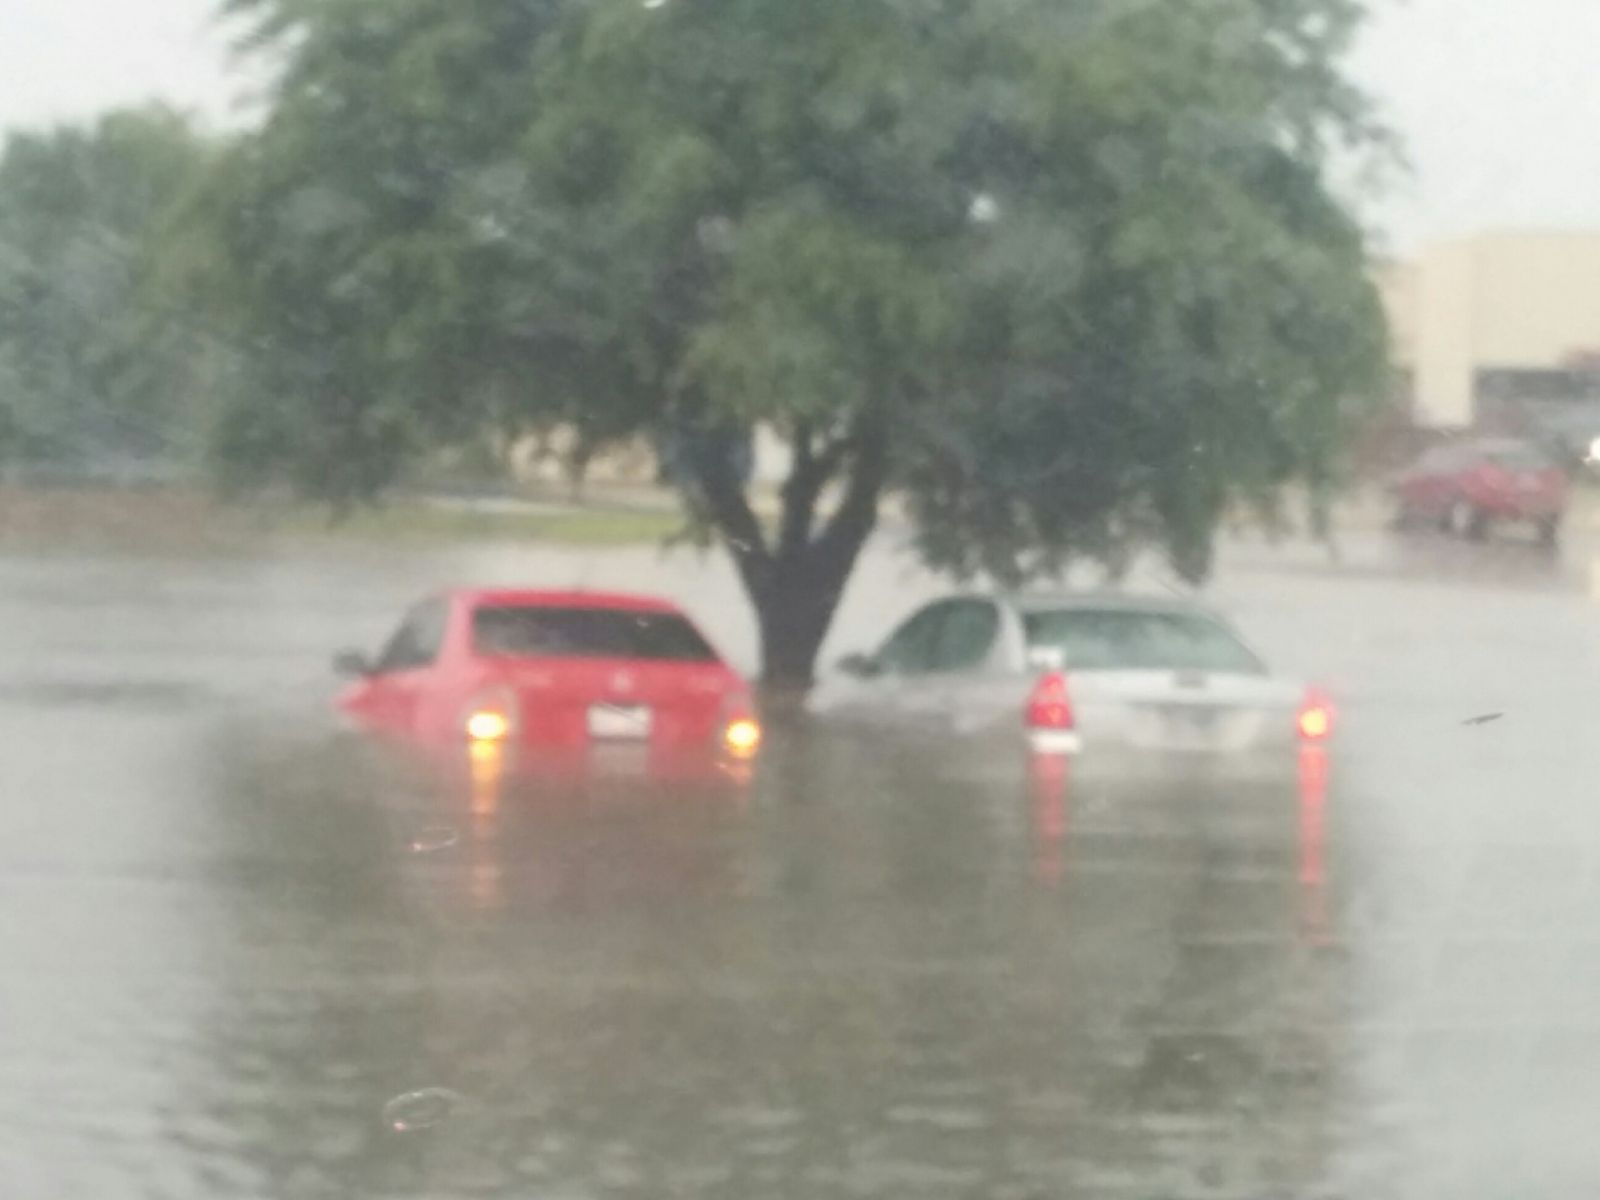 Flooding that occurred in and around the South Plains Mall in southwest Lubbock on 1 June 2016.